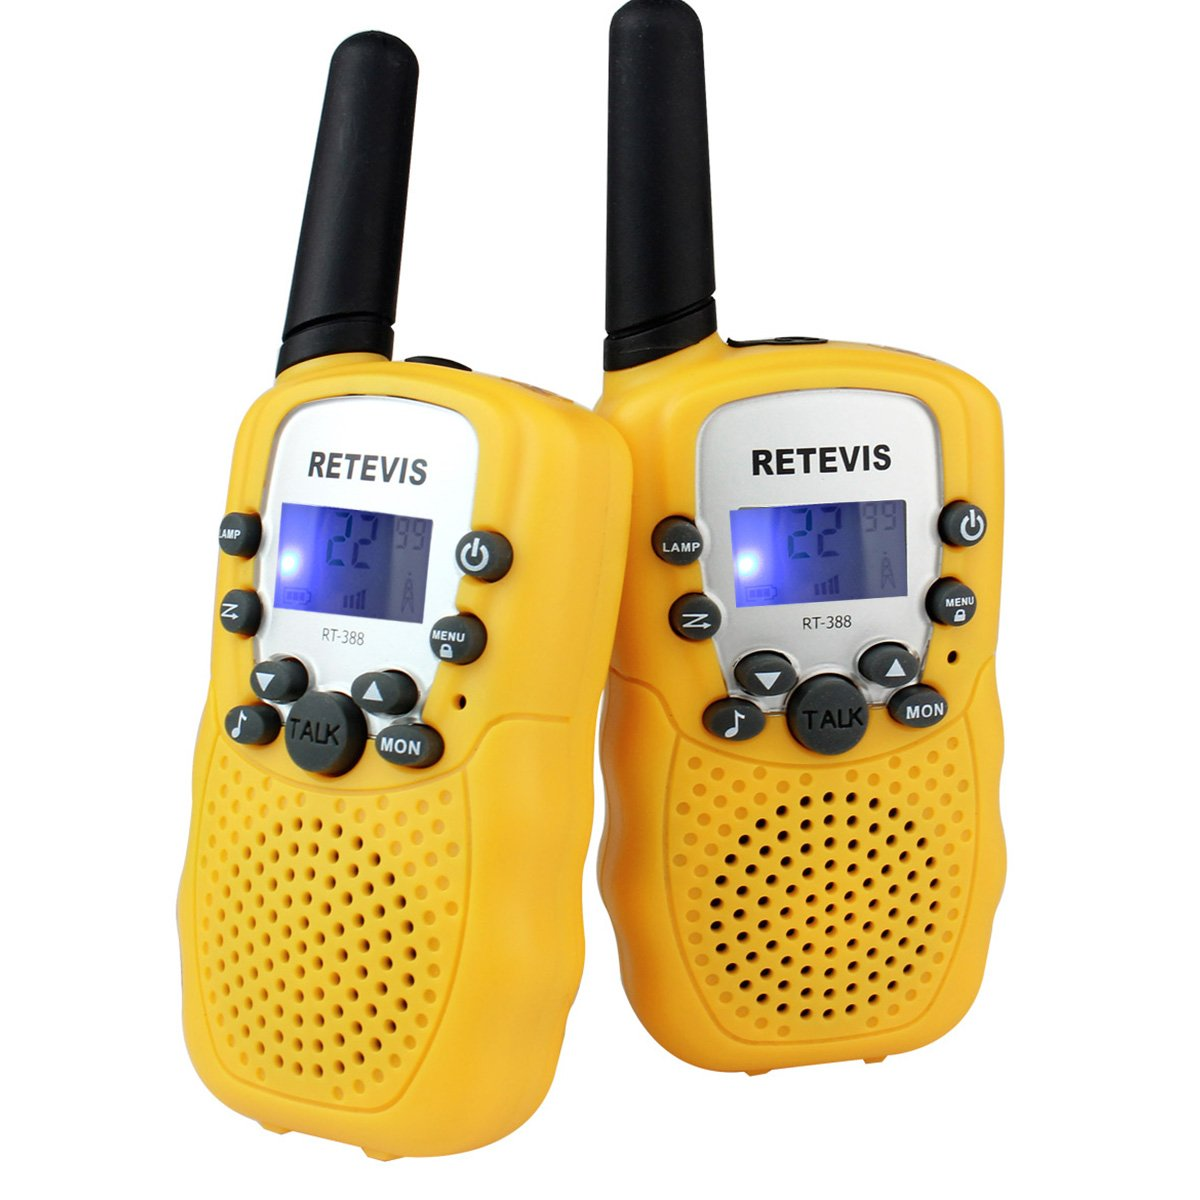 Retevis RT-388 Kids Walkie Talkies FRS 22CH LCD Display Flashlight VOX Toy for Kids(Yellow,1 Pair)